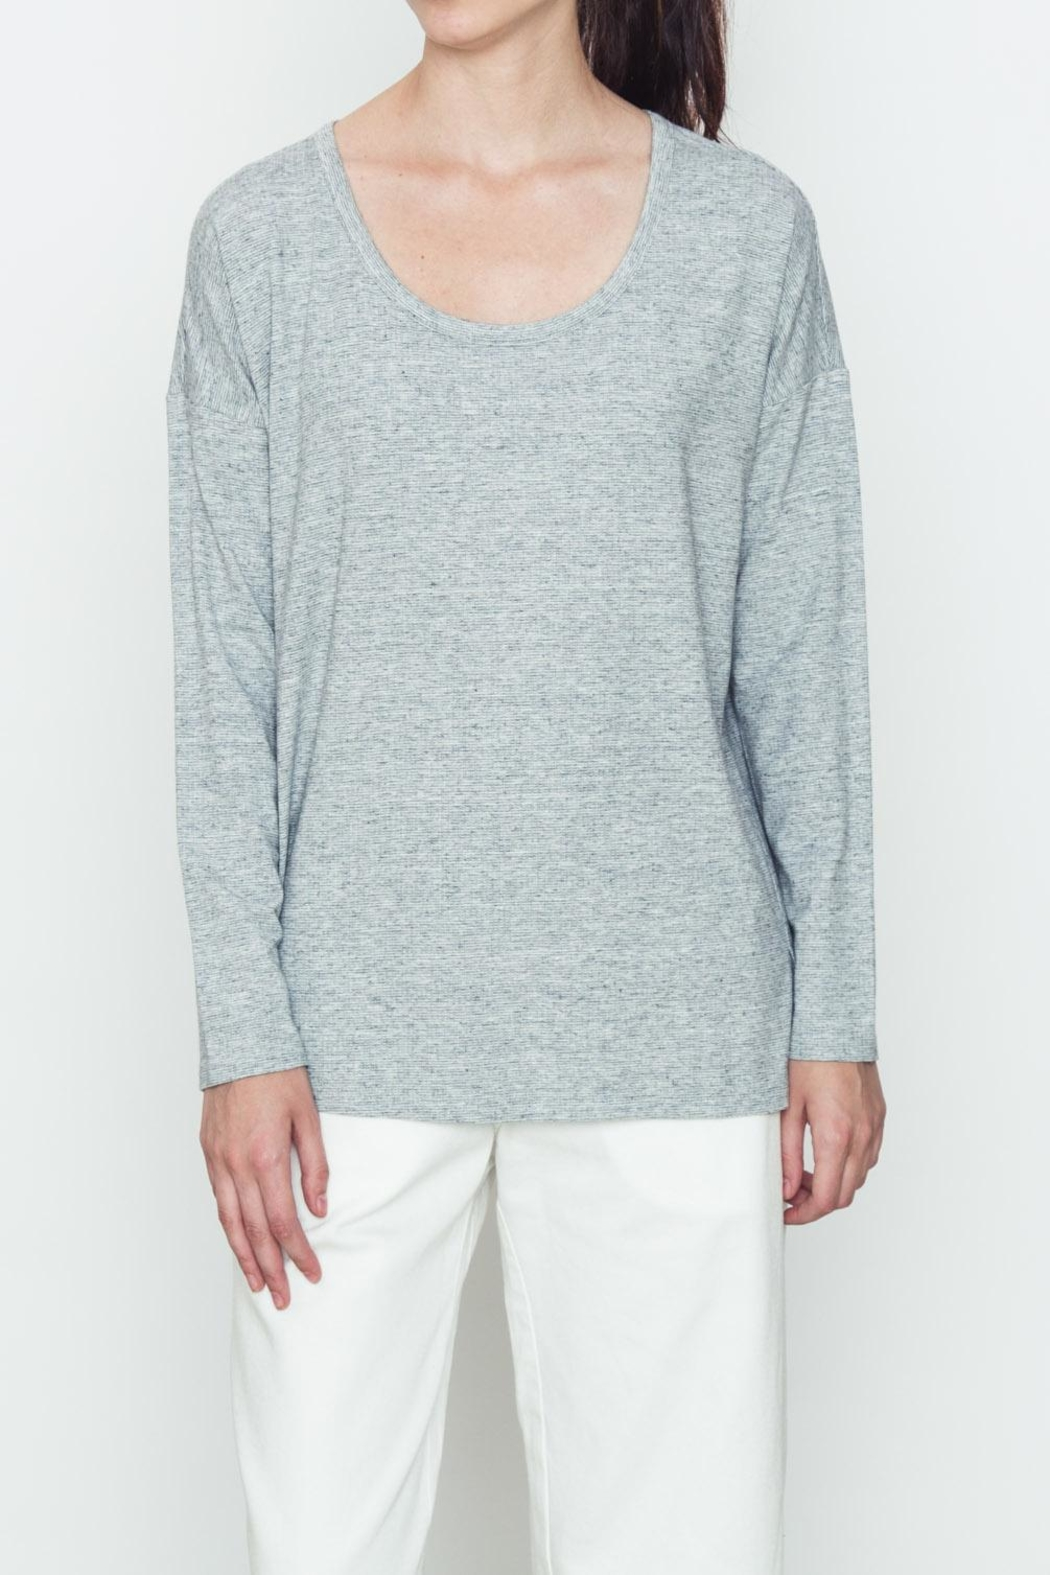 Movint Heather Knit Top - Main Image